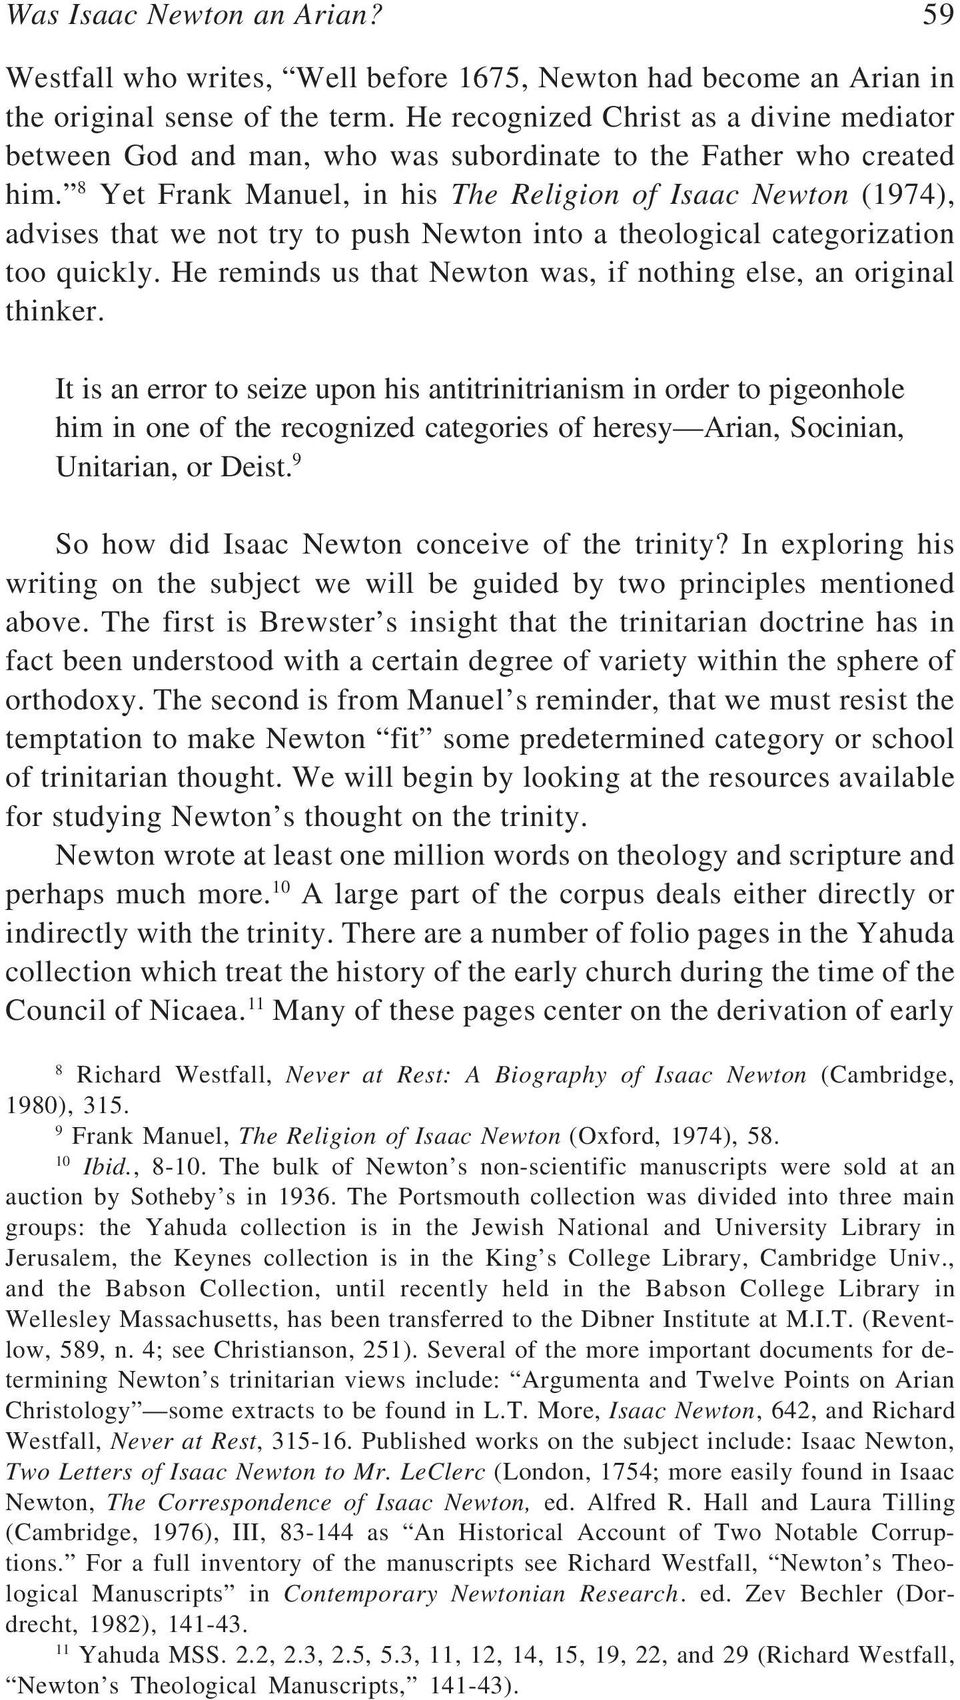 8 Yet Frank Manuel, in his The Religion of Isaac Newton (1974), advises that we not try to push Newton into a theological categorization too quickly.